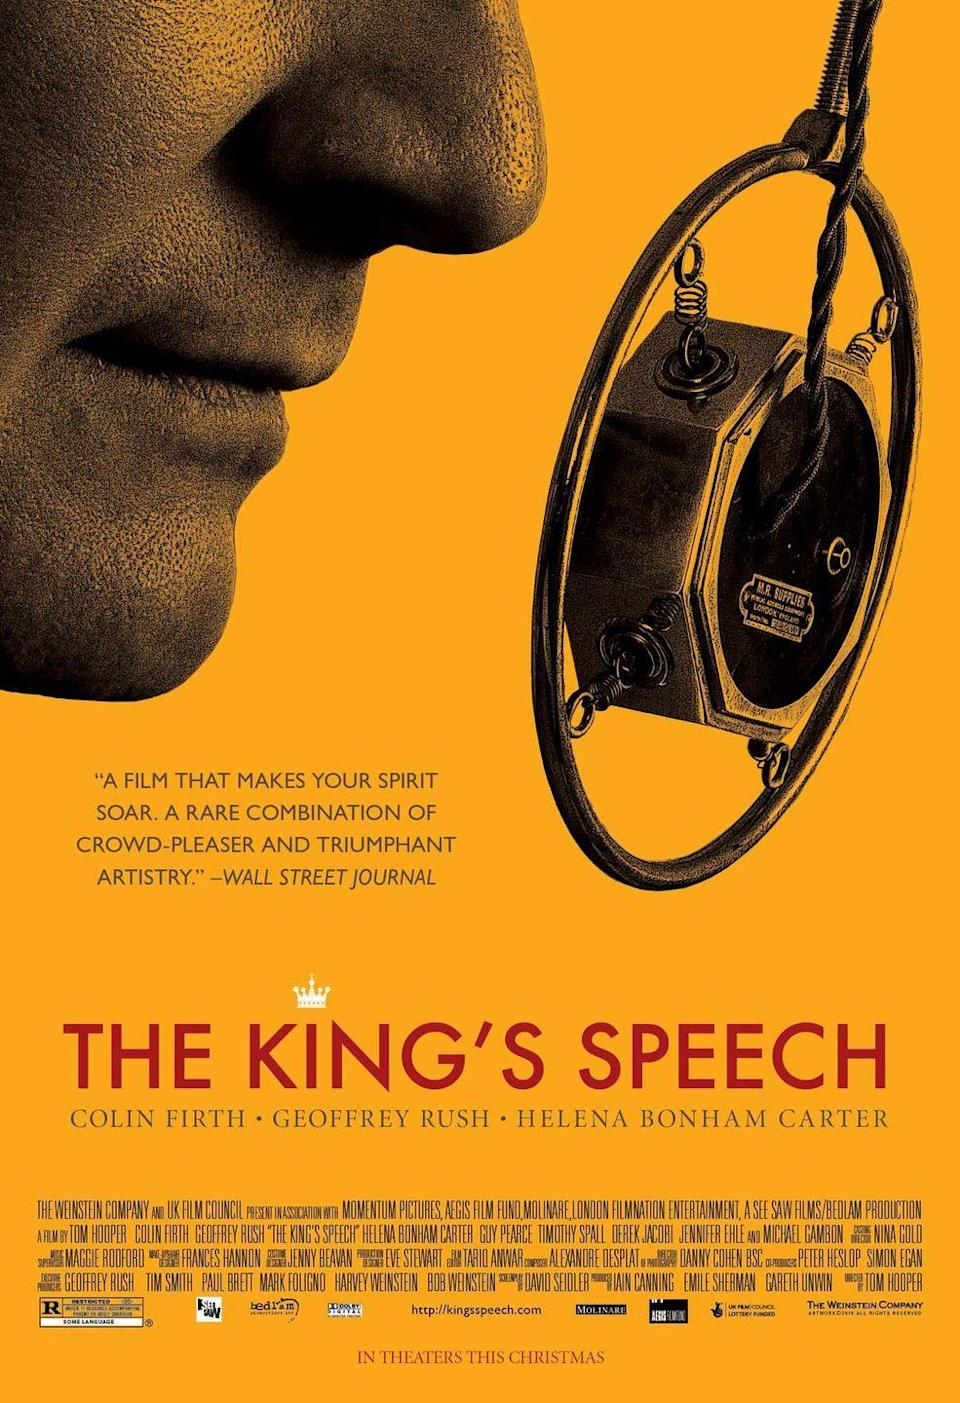 """<p><a class=""""link rapid-noclick-resp"""" href=""""https://www.amazon.com/Kings-Speech-Colin-Firth/dp/B004R36QUE/ref=sr_1_1?dchild=1&keywords=the+king%27s+speech&qid=1614179802&sr=8-1&tag=syn-yahoo-20&ascsubtag=%5Bartid%7C10067.g.15907978%5Bsrc%7Cyahoo-us"""" rel=""""nofollow noopener"""" target=""""_blank"""" data-ylk=""""slk:Watch Now"""">Watch Now</a></p><p>This Best Picture-winning film also brought Colin Firth the Best Actor Oscar for his complex portrayal of King George VI. Unexpectedly ascending the throne after his brother abdicates, the king is forced to find a solution for his life-long stutter with the help of an unconventional speech therapist (Geoffrey Rush). </p>"""